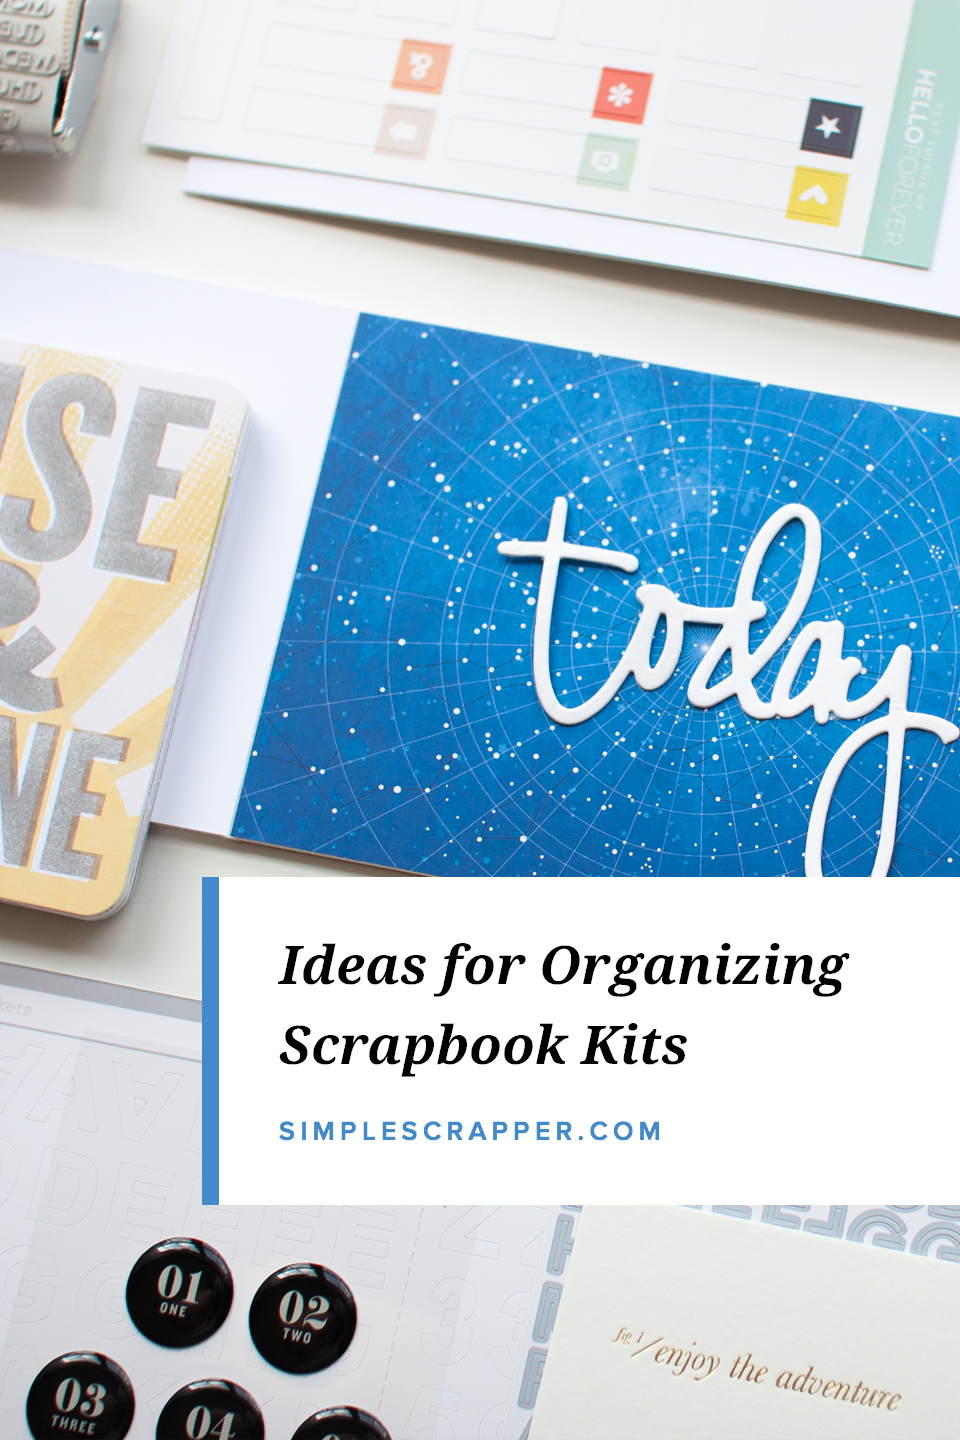 Whether you store paper scrapbook kits over the long time or just until you make a few things, finding the best storage solution for your needs can add ease to the creative process.